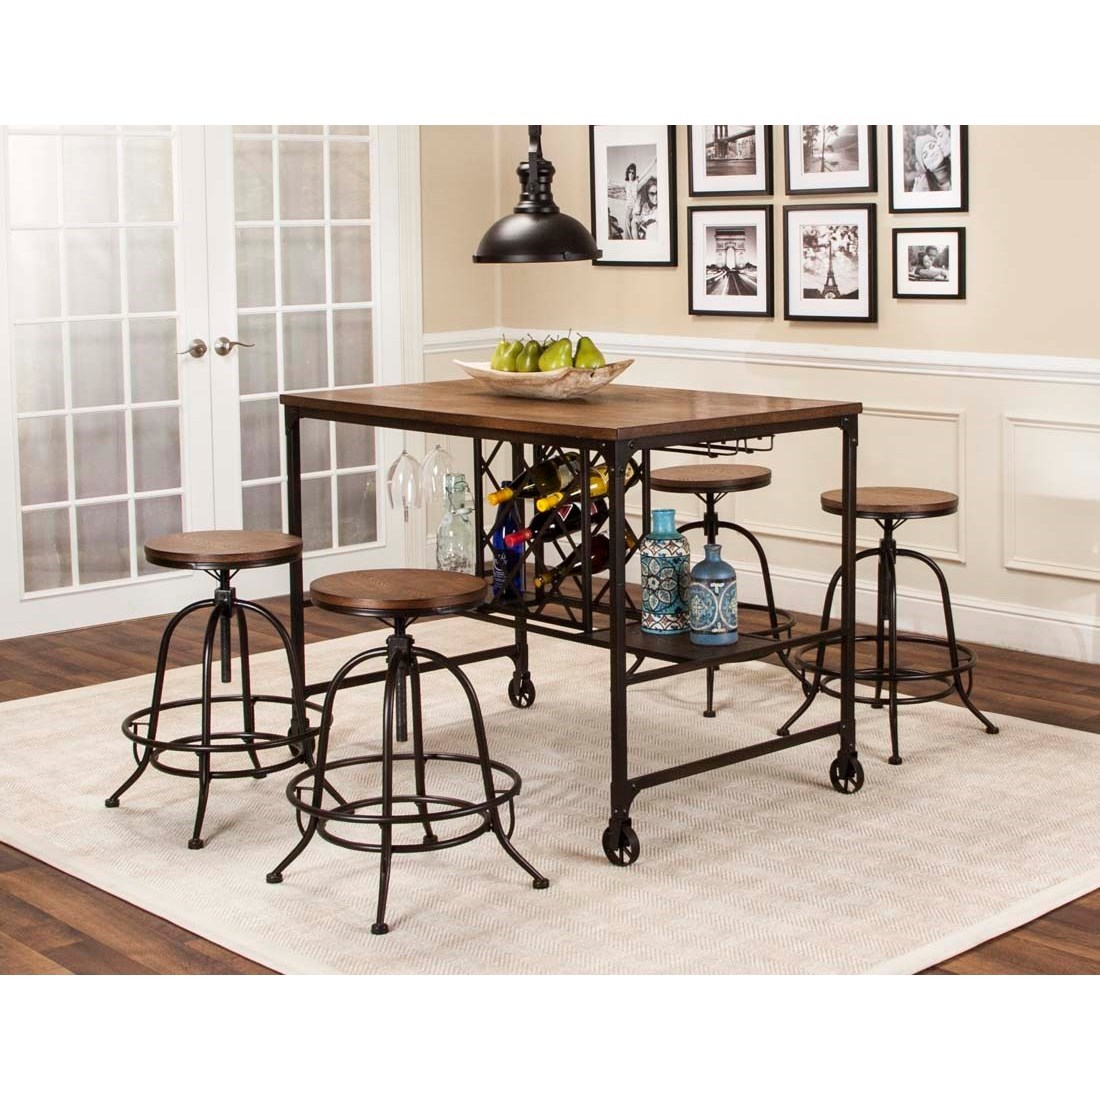 Cramco Inc Craft 5 Piece Counter Height Storage Table and